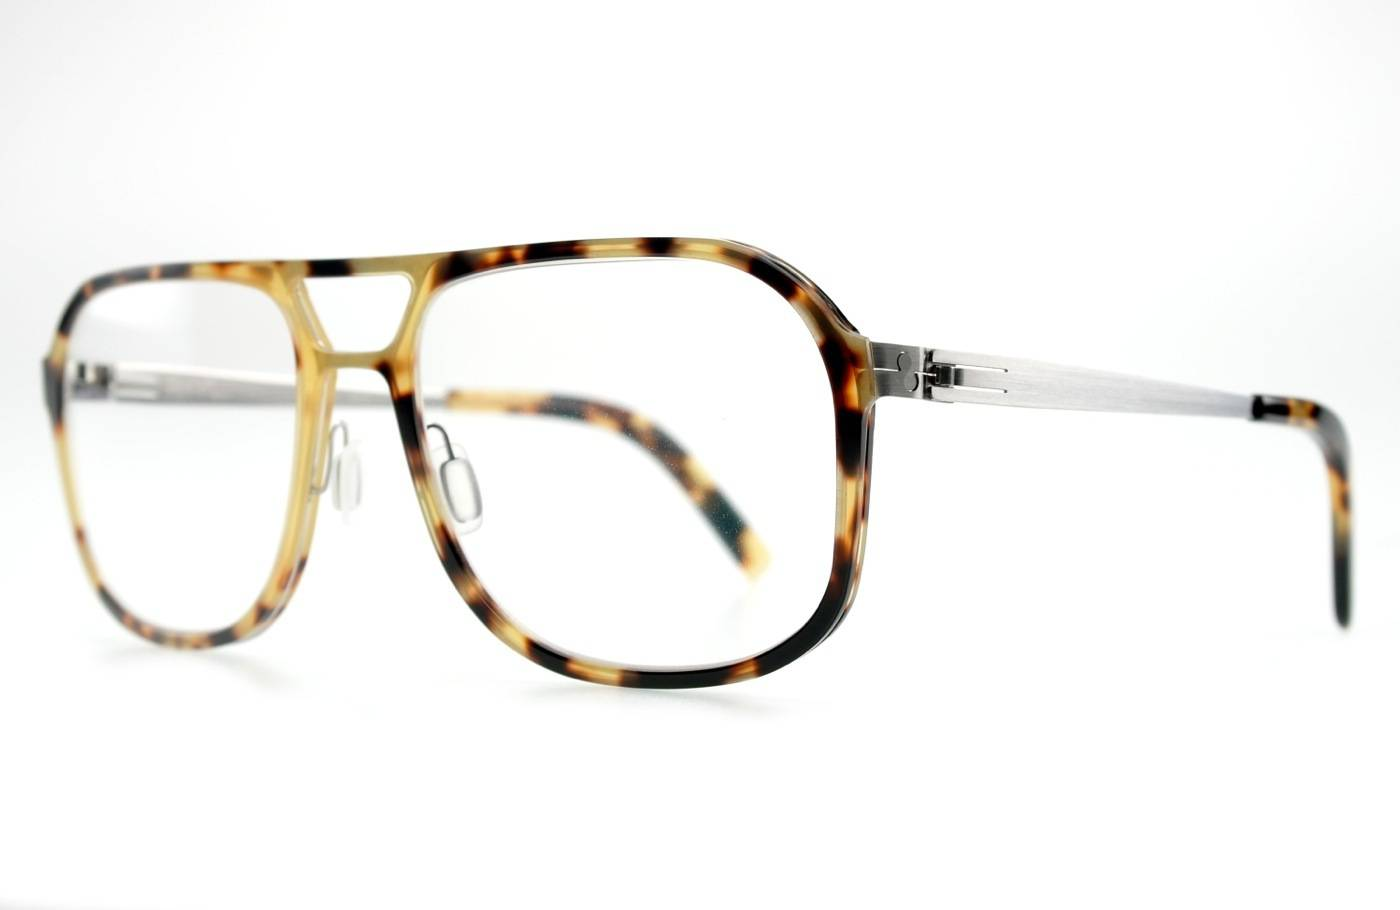 Bywp Wp13031 Spectacle Culture Spectacle Eyewear